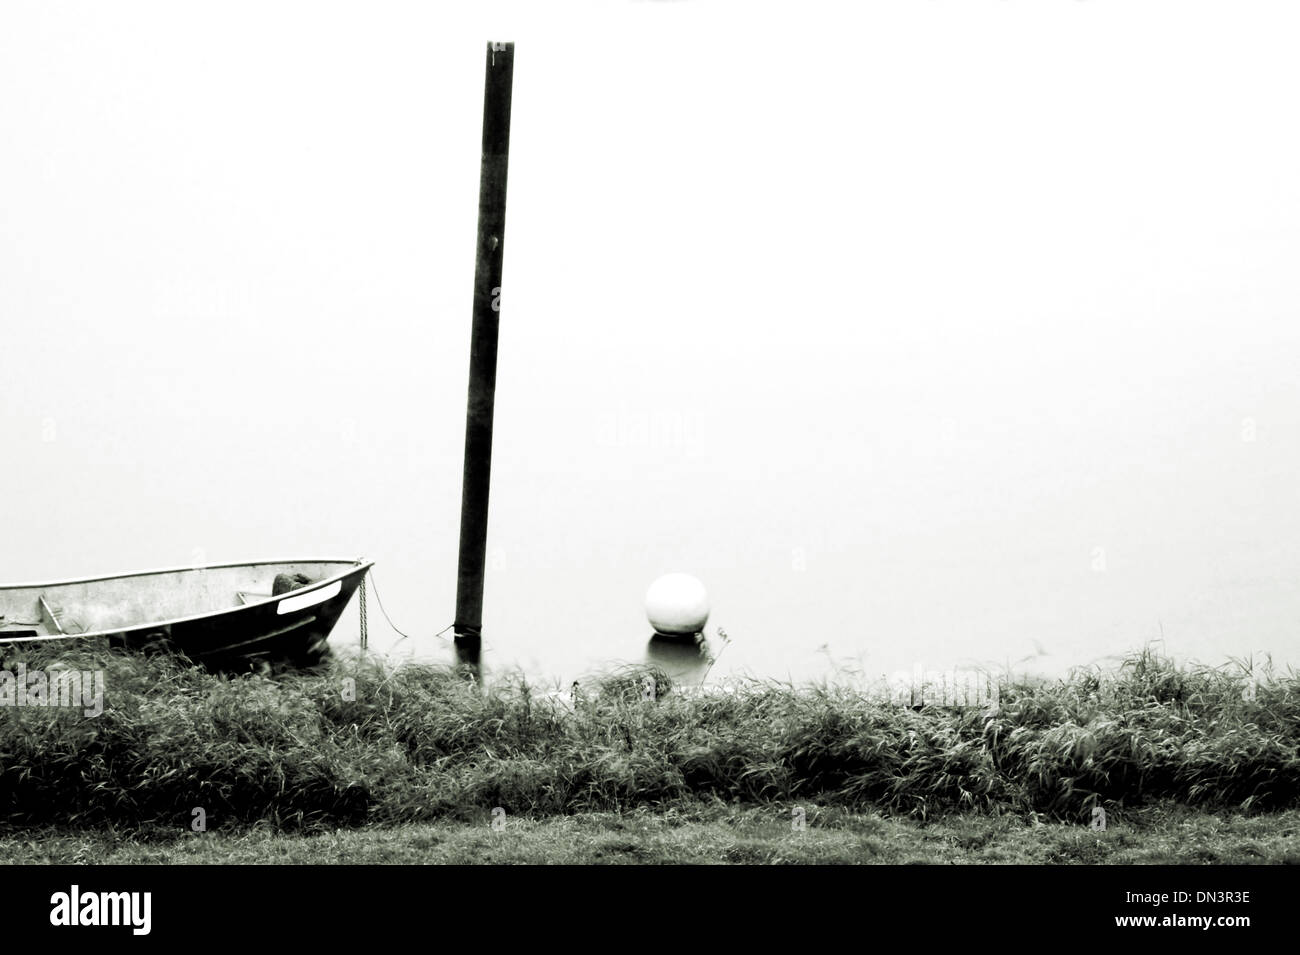 Rowing boat long time exposed Stock Photo